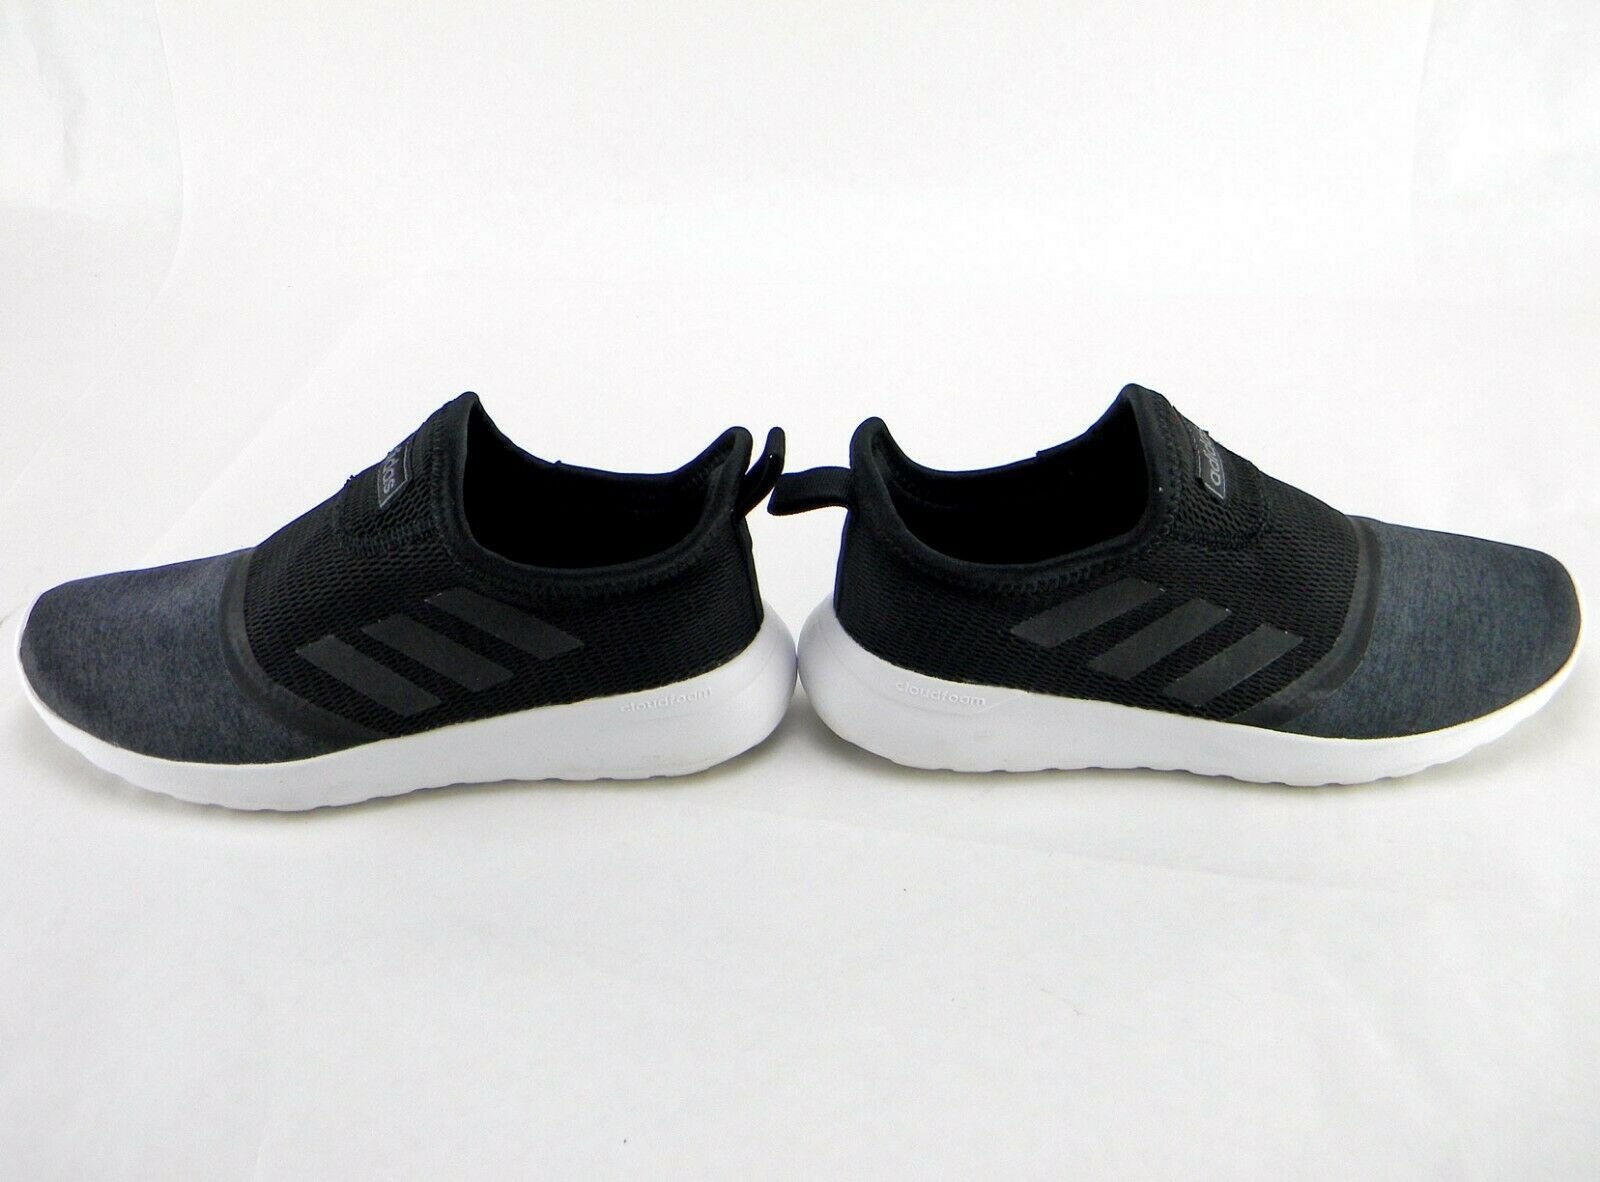 NEW Adidas Ladies Lite Racer Slipon Shoes and 21 similar items